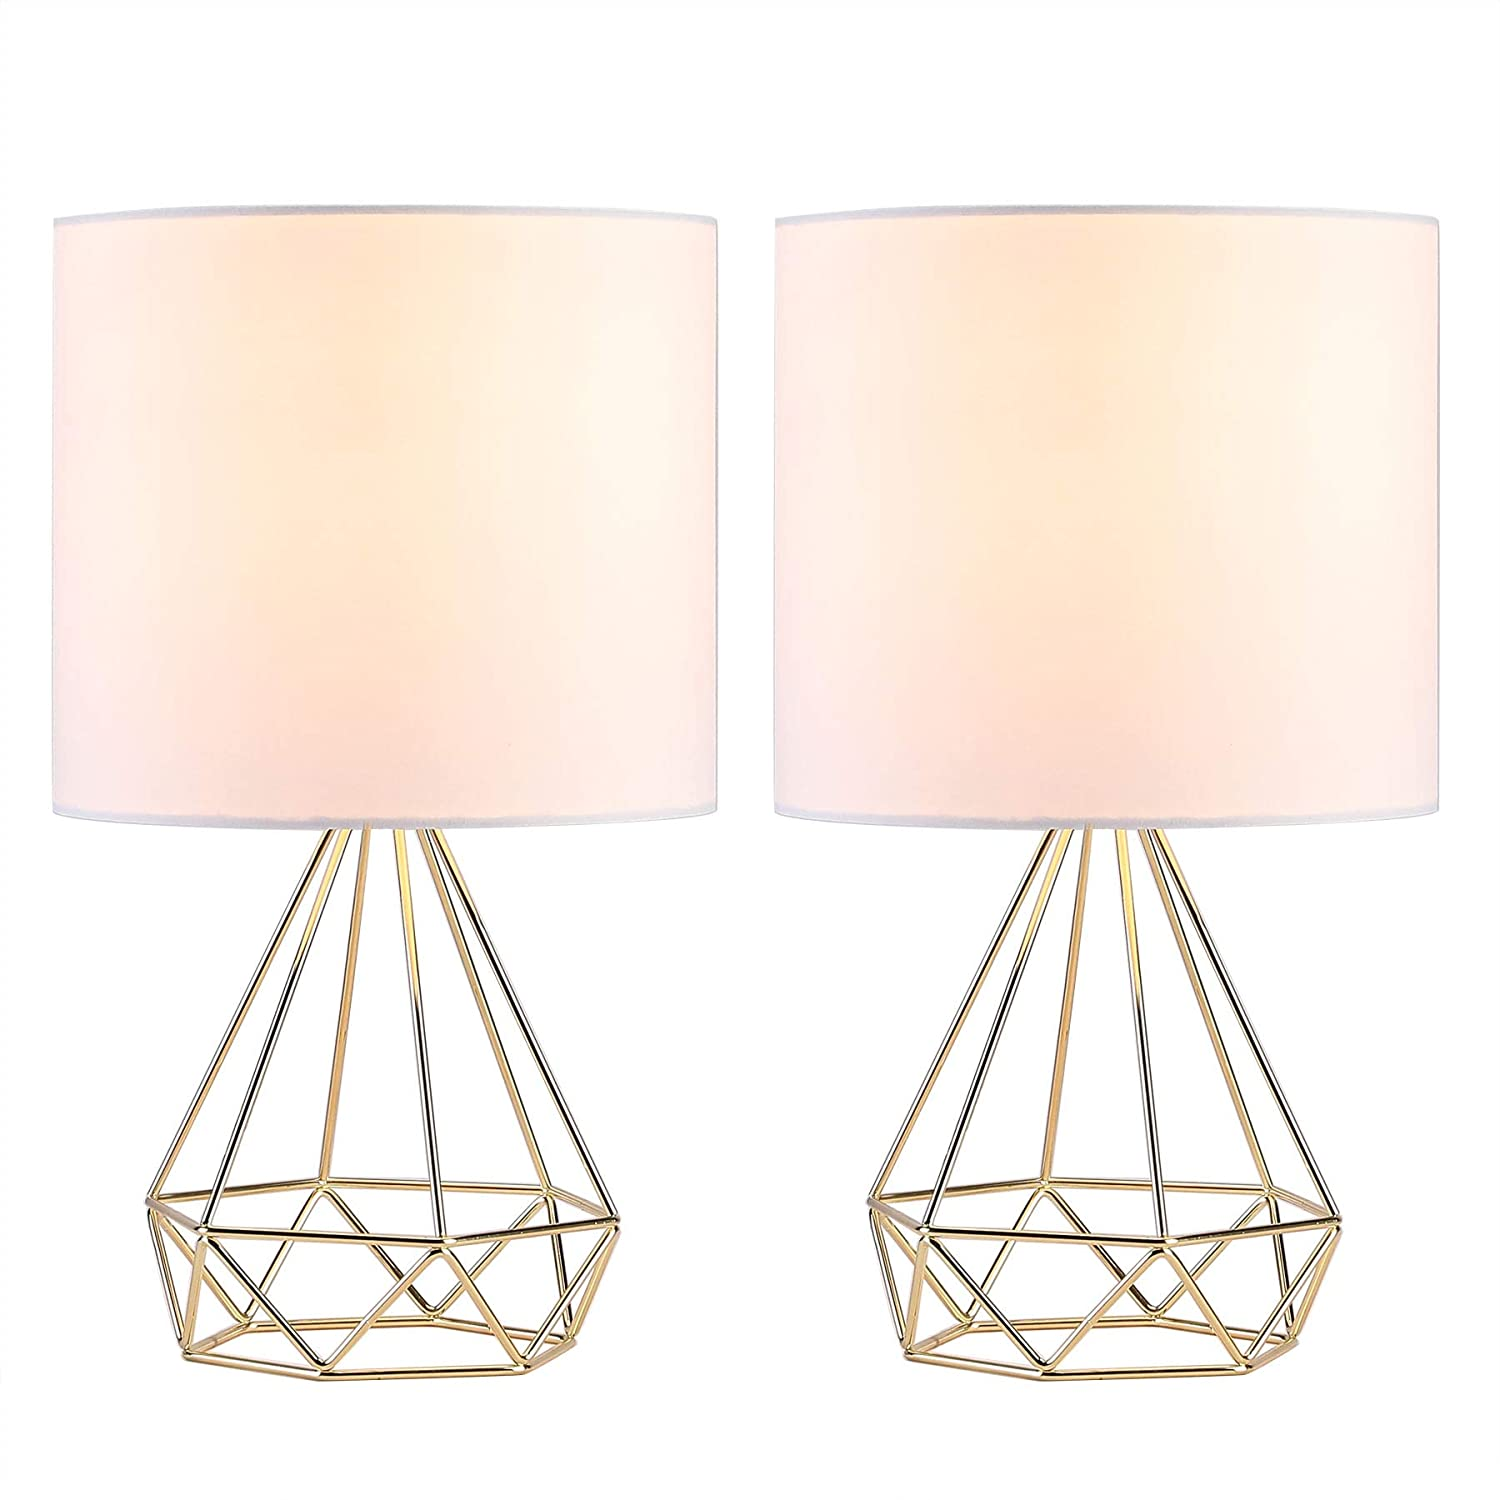 CO-Z Modern Table Lamps for Living Room Bedroom Set of 2, Gold Desk Lamp with Hollowed Out Base and White Fabric Shade, 16